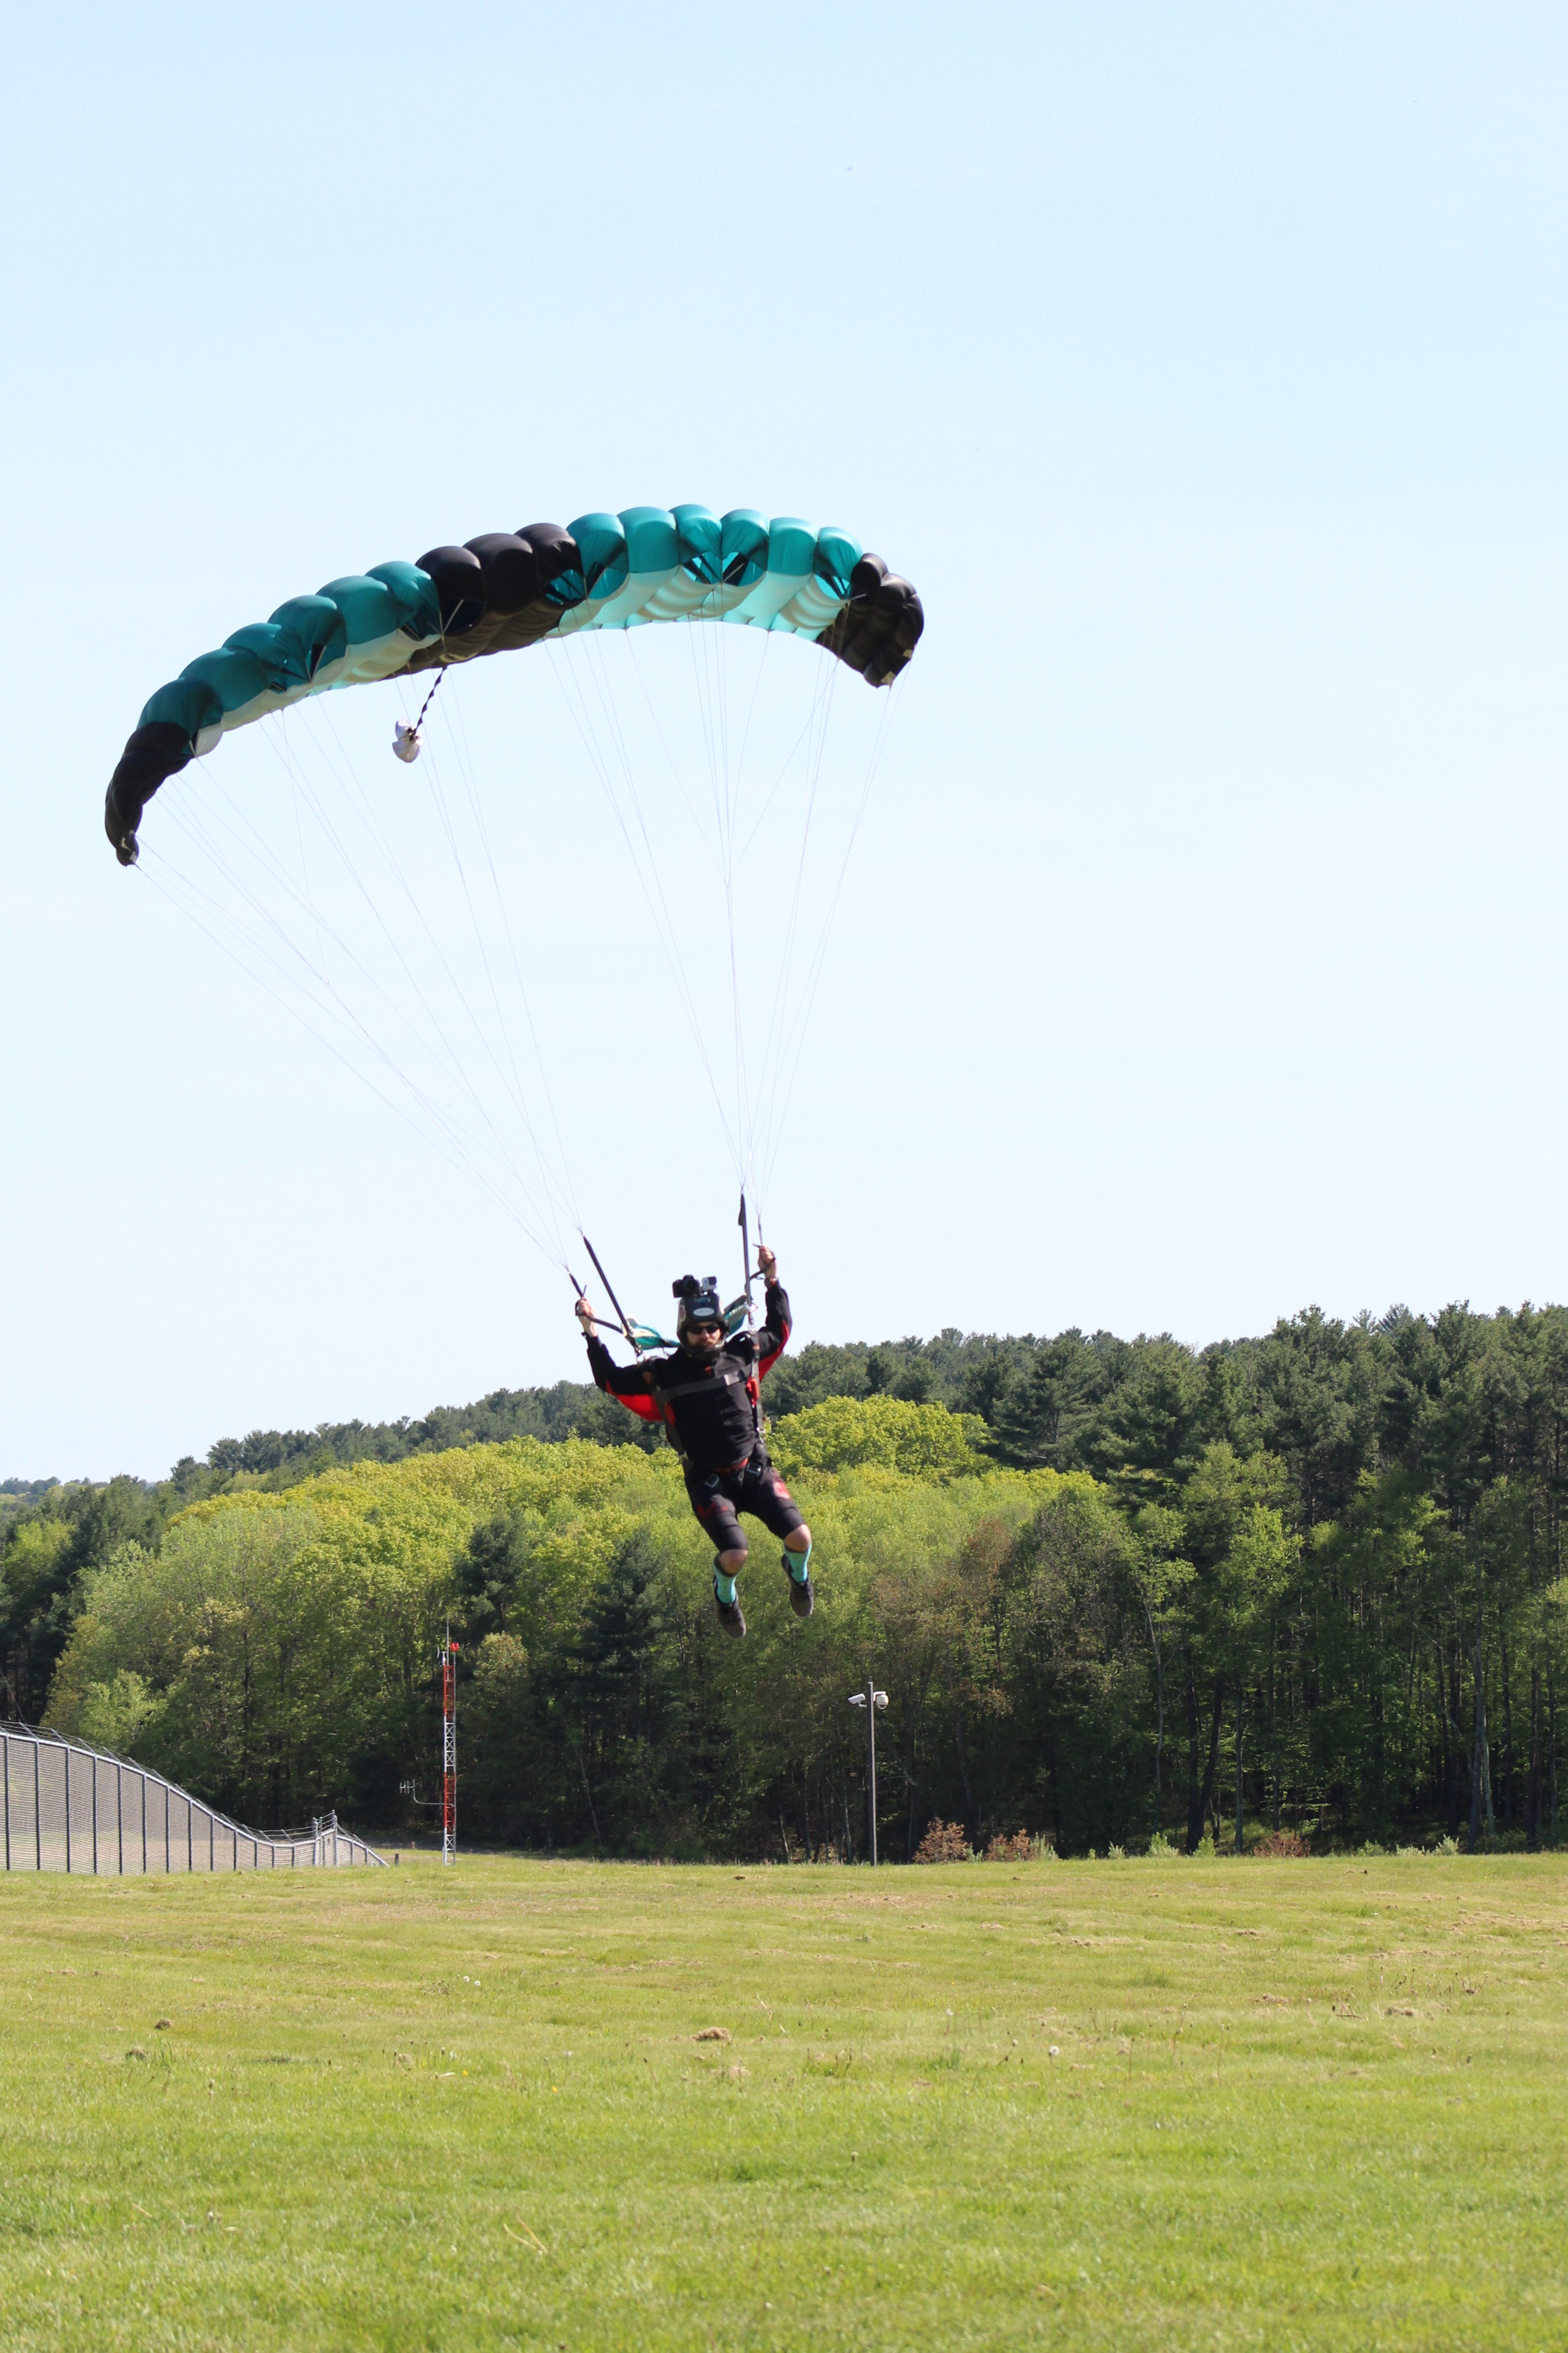 Ram air parachutes are softer for landings